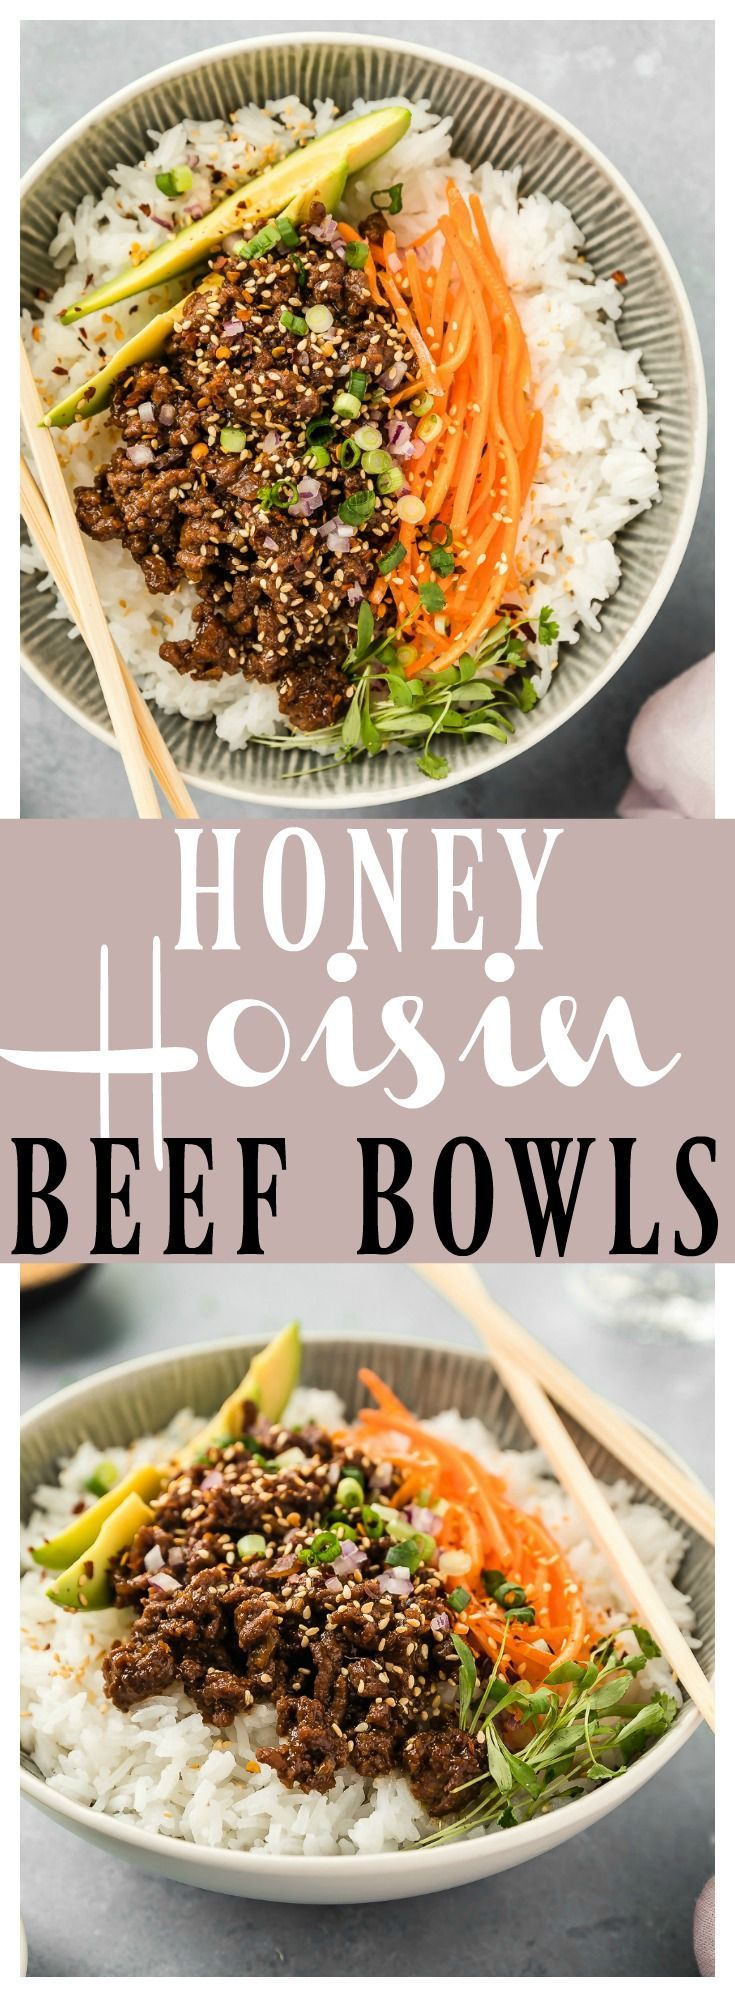 Stir-Fry Honey Hoisin Beef Bowls | These Bowls are packed with flavor & ready in 30 minutes or less! Lean ground beef mixed with finely diced mushrooms, red onions, and Asian aromatics, sautéed in a sweet and savory sauce, these bowls are hearty, yet healthy and perfect for easy weeknight dinners! #easy #recipe #dinner #beef